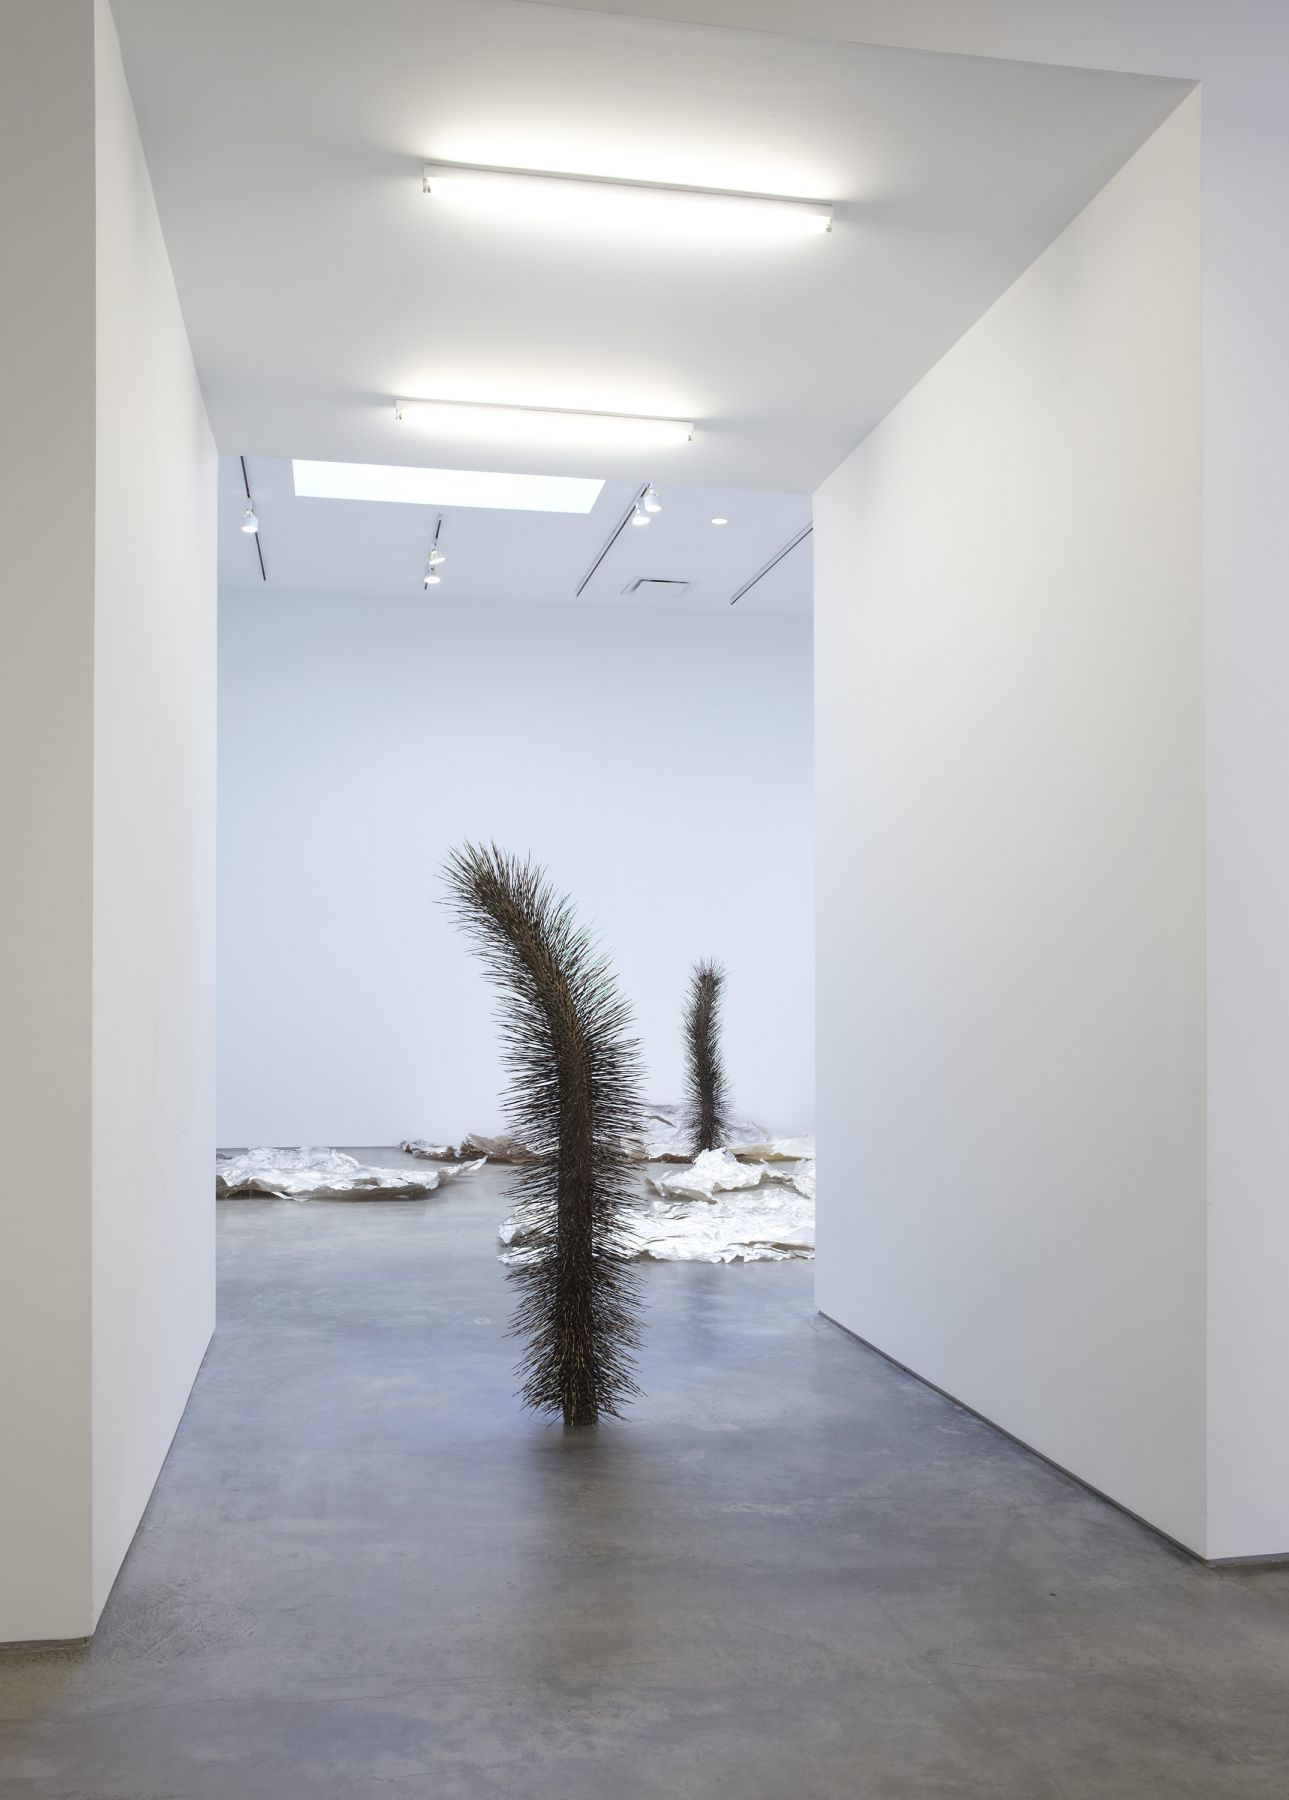 Intimate Life (Installation View), Marianne Boesky Gallery, 2010